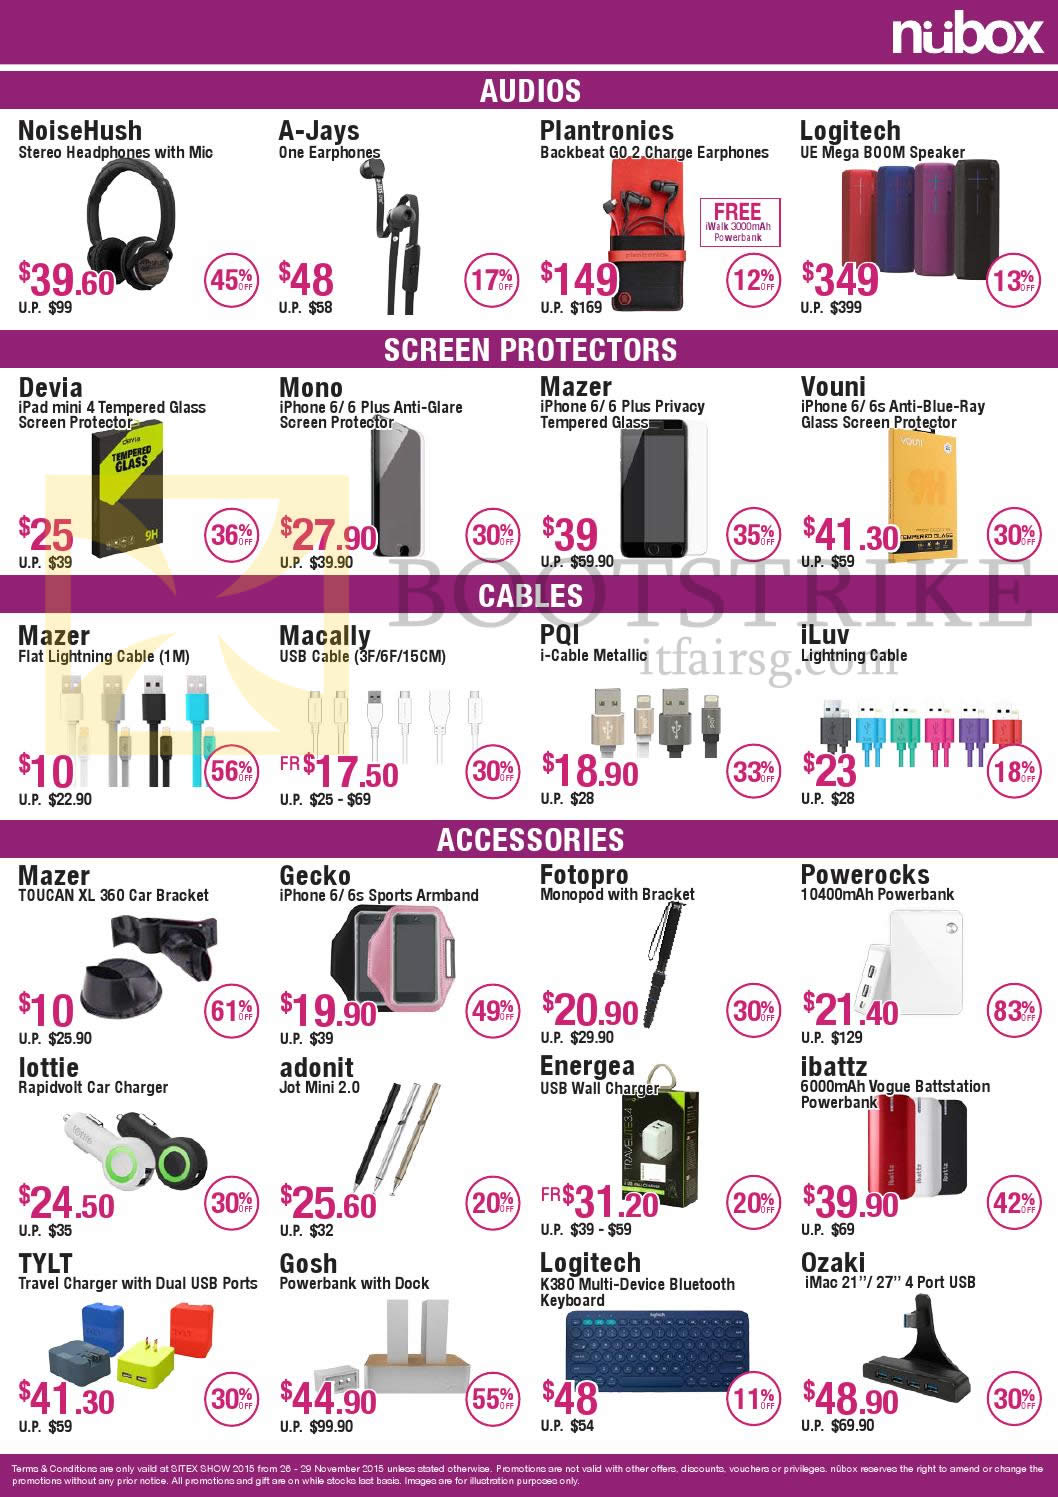 SITEX 2015 price list image brochure of Nubox Earphones, Headphones, Cables, Accessories, NoiseHush, A-Jays, Plantronics, Logitech, Devia, Mono, PQI, ILuv, Fotopro, Powerocks